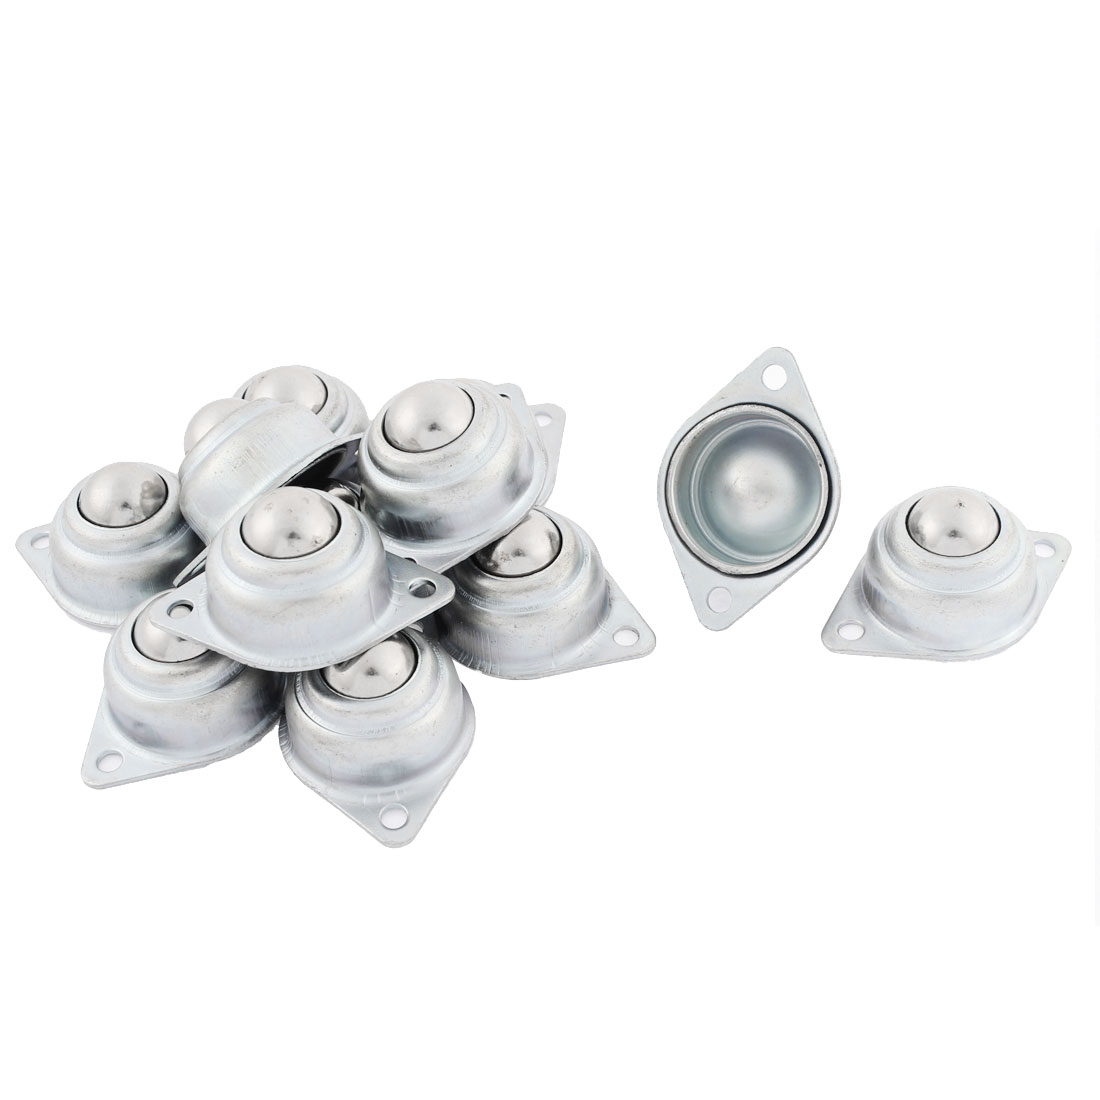 12 Pcs Eye Shape Flange Mounting Roller Ball Transfer Unit Bearing Silver Tone